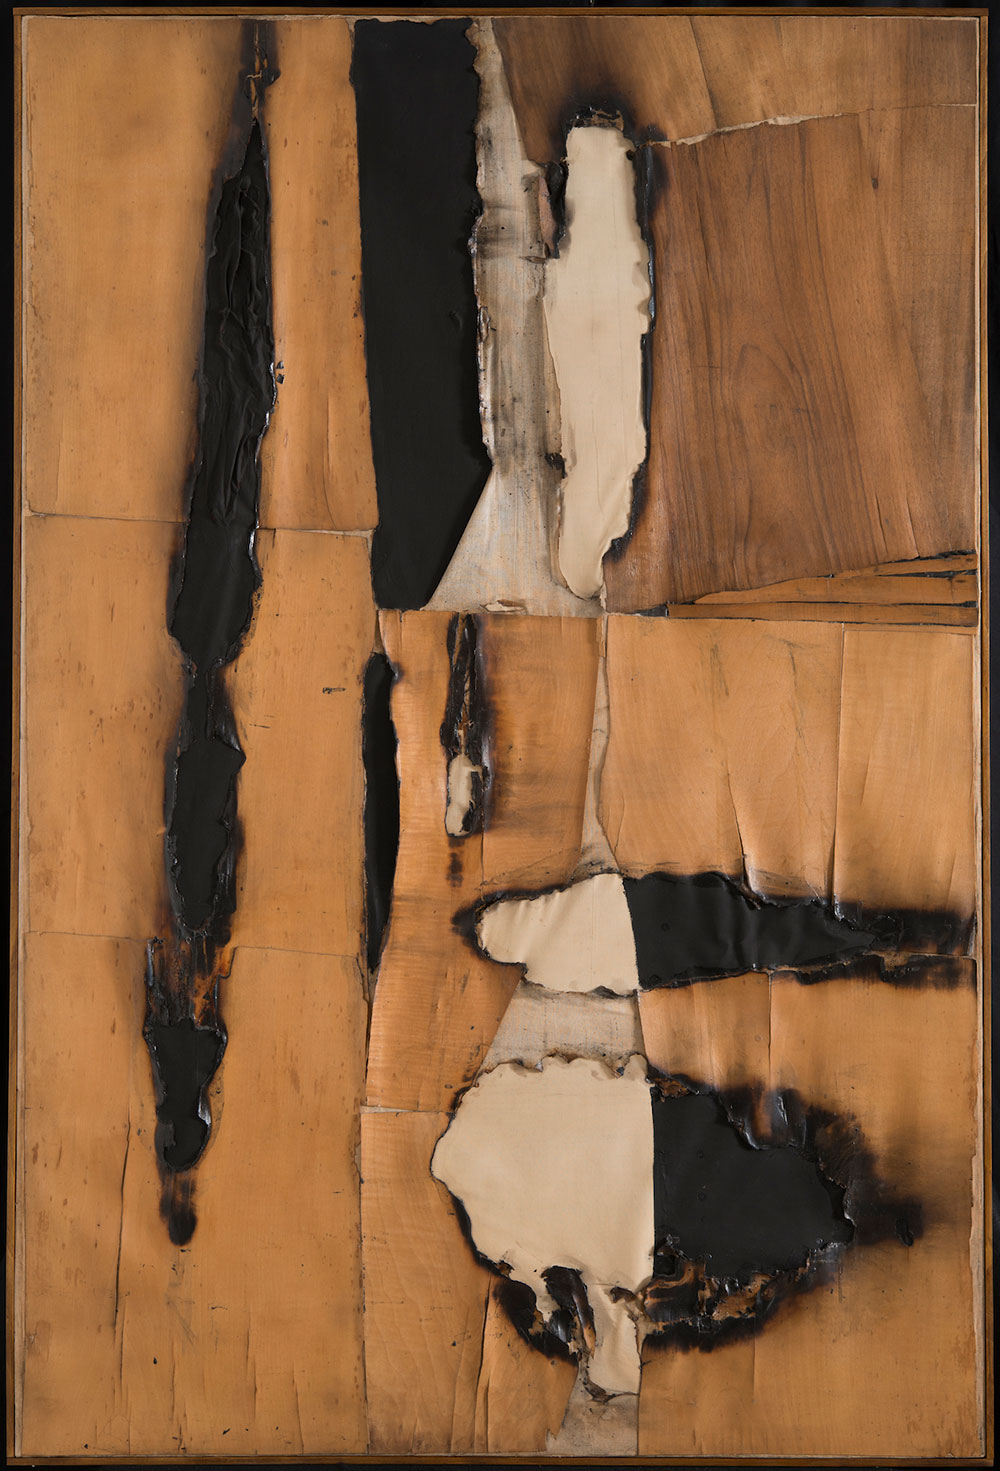 "Alberto Burri, ""Combustione legno (Wood Combustion)"" (1957), wood veneer, paper, combustion, acrylic, and Vinavil on canvas, 149.5 x 99 cm"